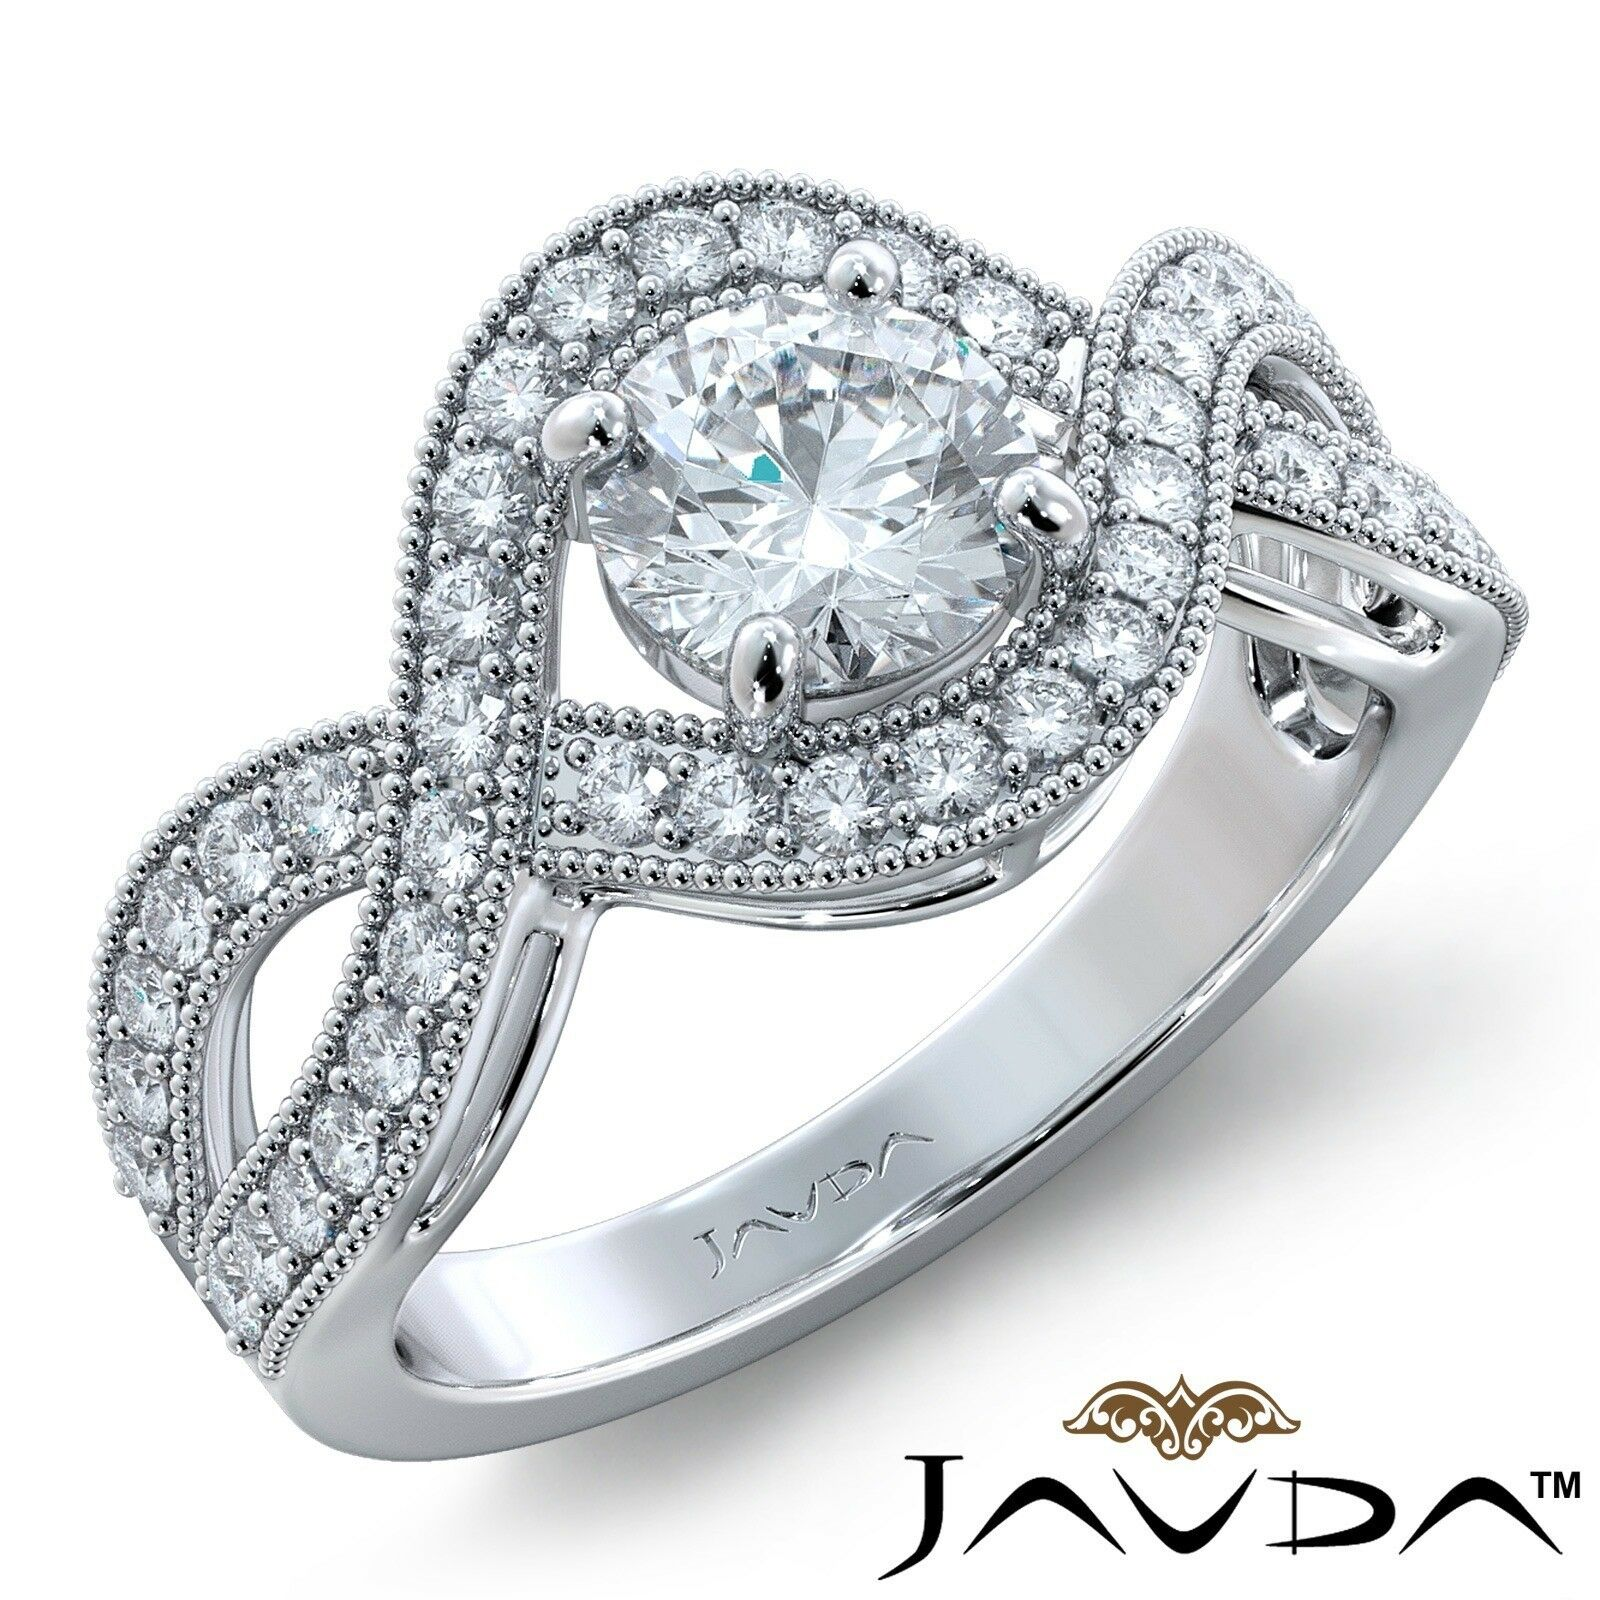 1.53ctw Milgrain Halo Accent Round Diamond Engagement Ring GIA J-SI2 White Gold